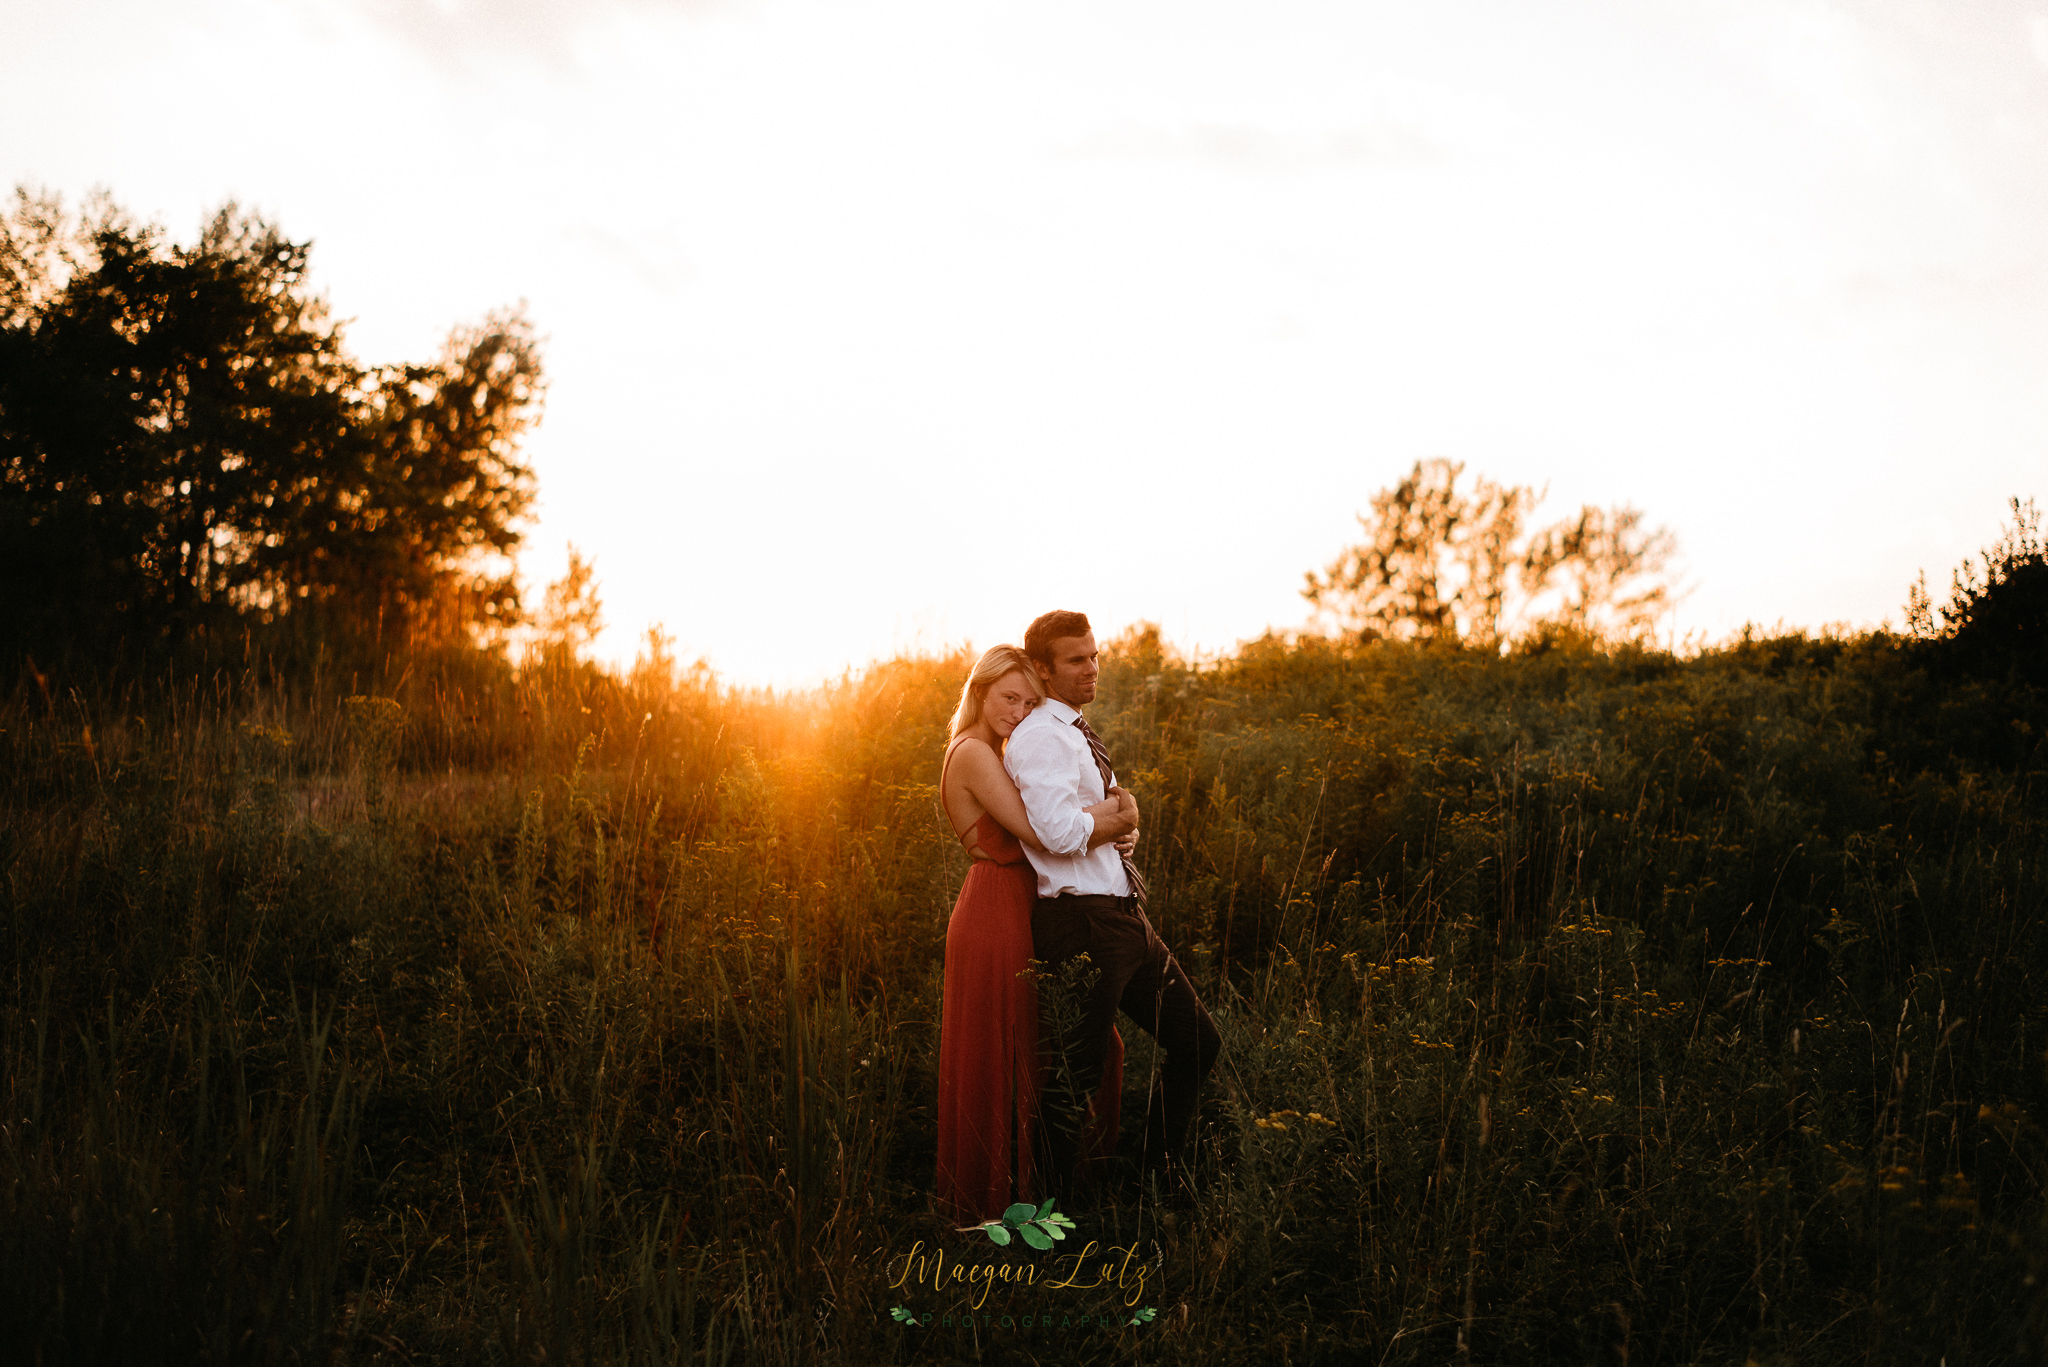 Wedding Photographer in NEPA & Central PA